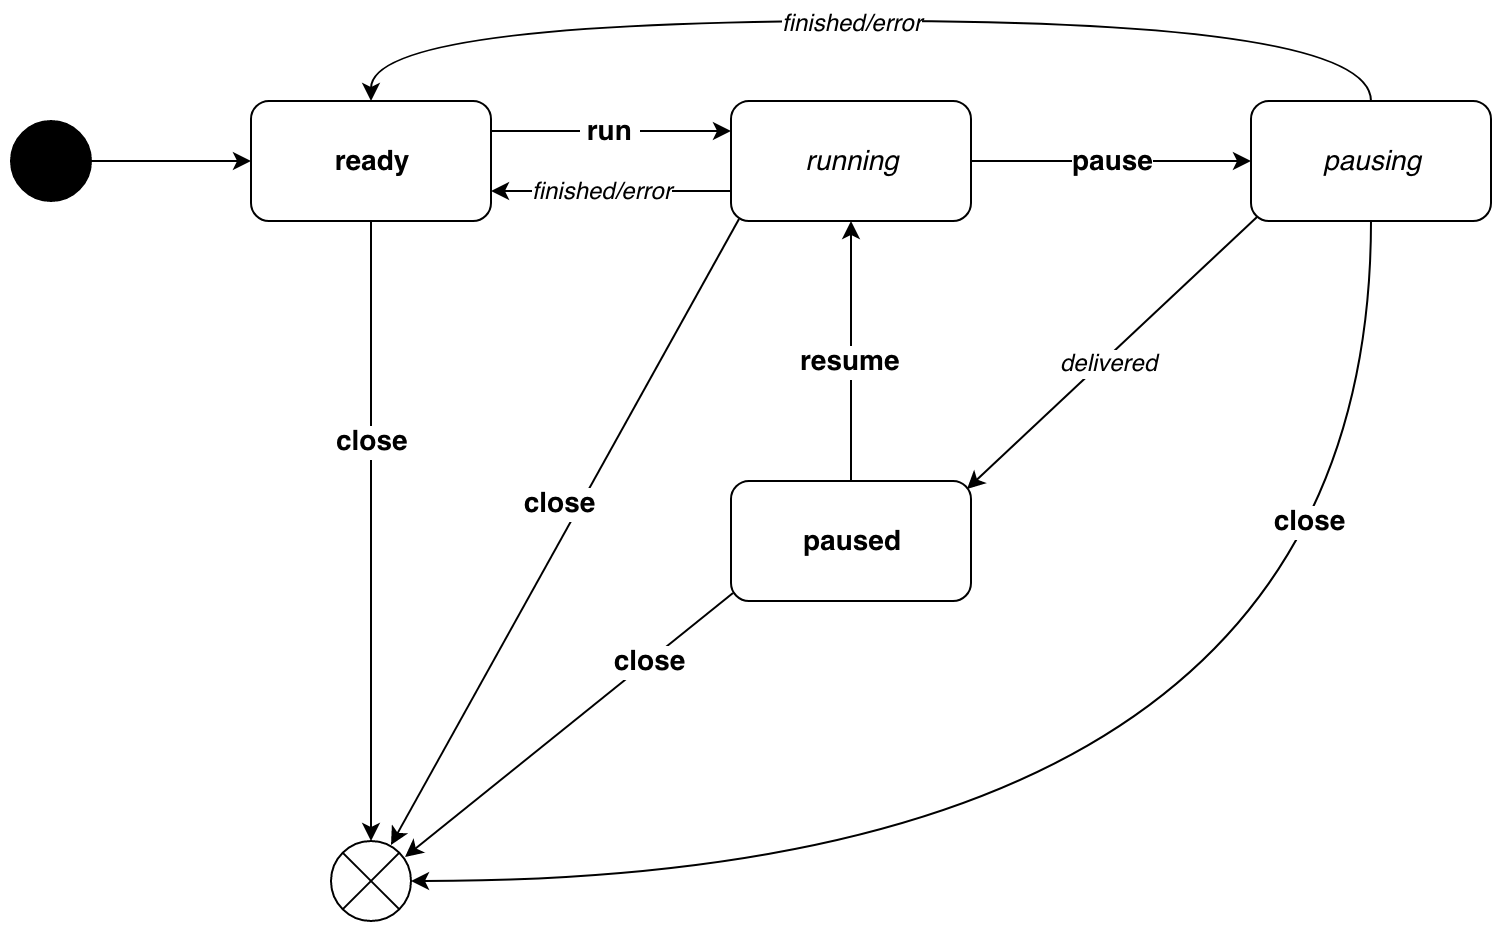 pipe_lifecycle